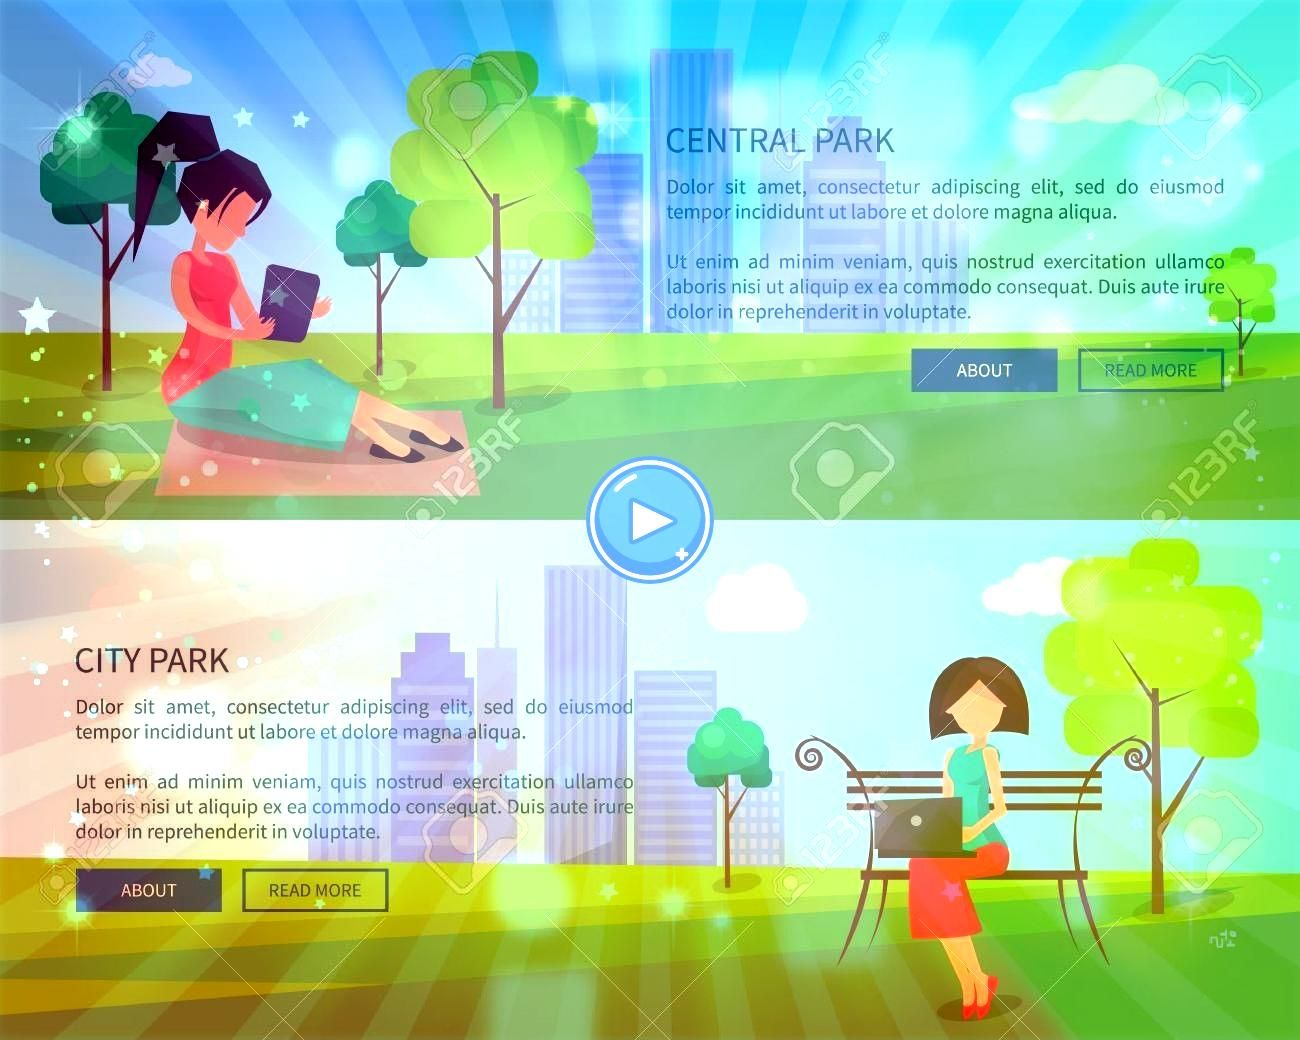 City Park Banners with People and Gadgets Central City Park Banners with People and Gadgets  Healthy People Lifestyle Fitness 100 Fitness Vector Icons Sport Icons 900 Adi...